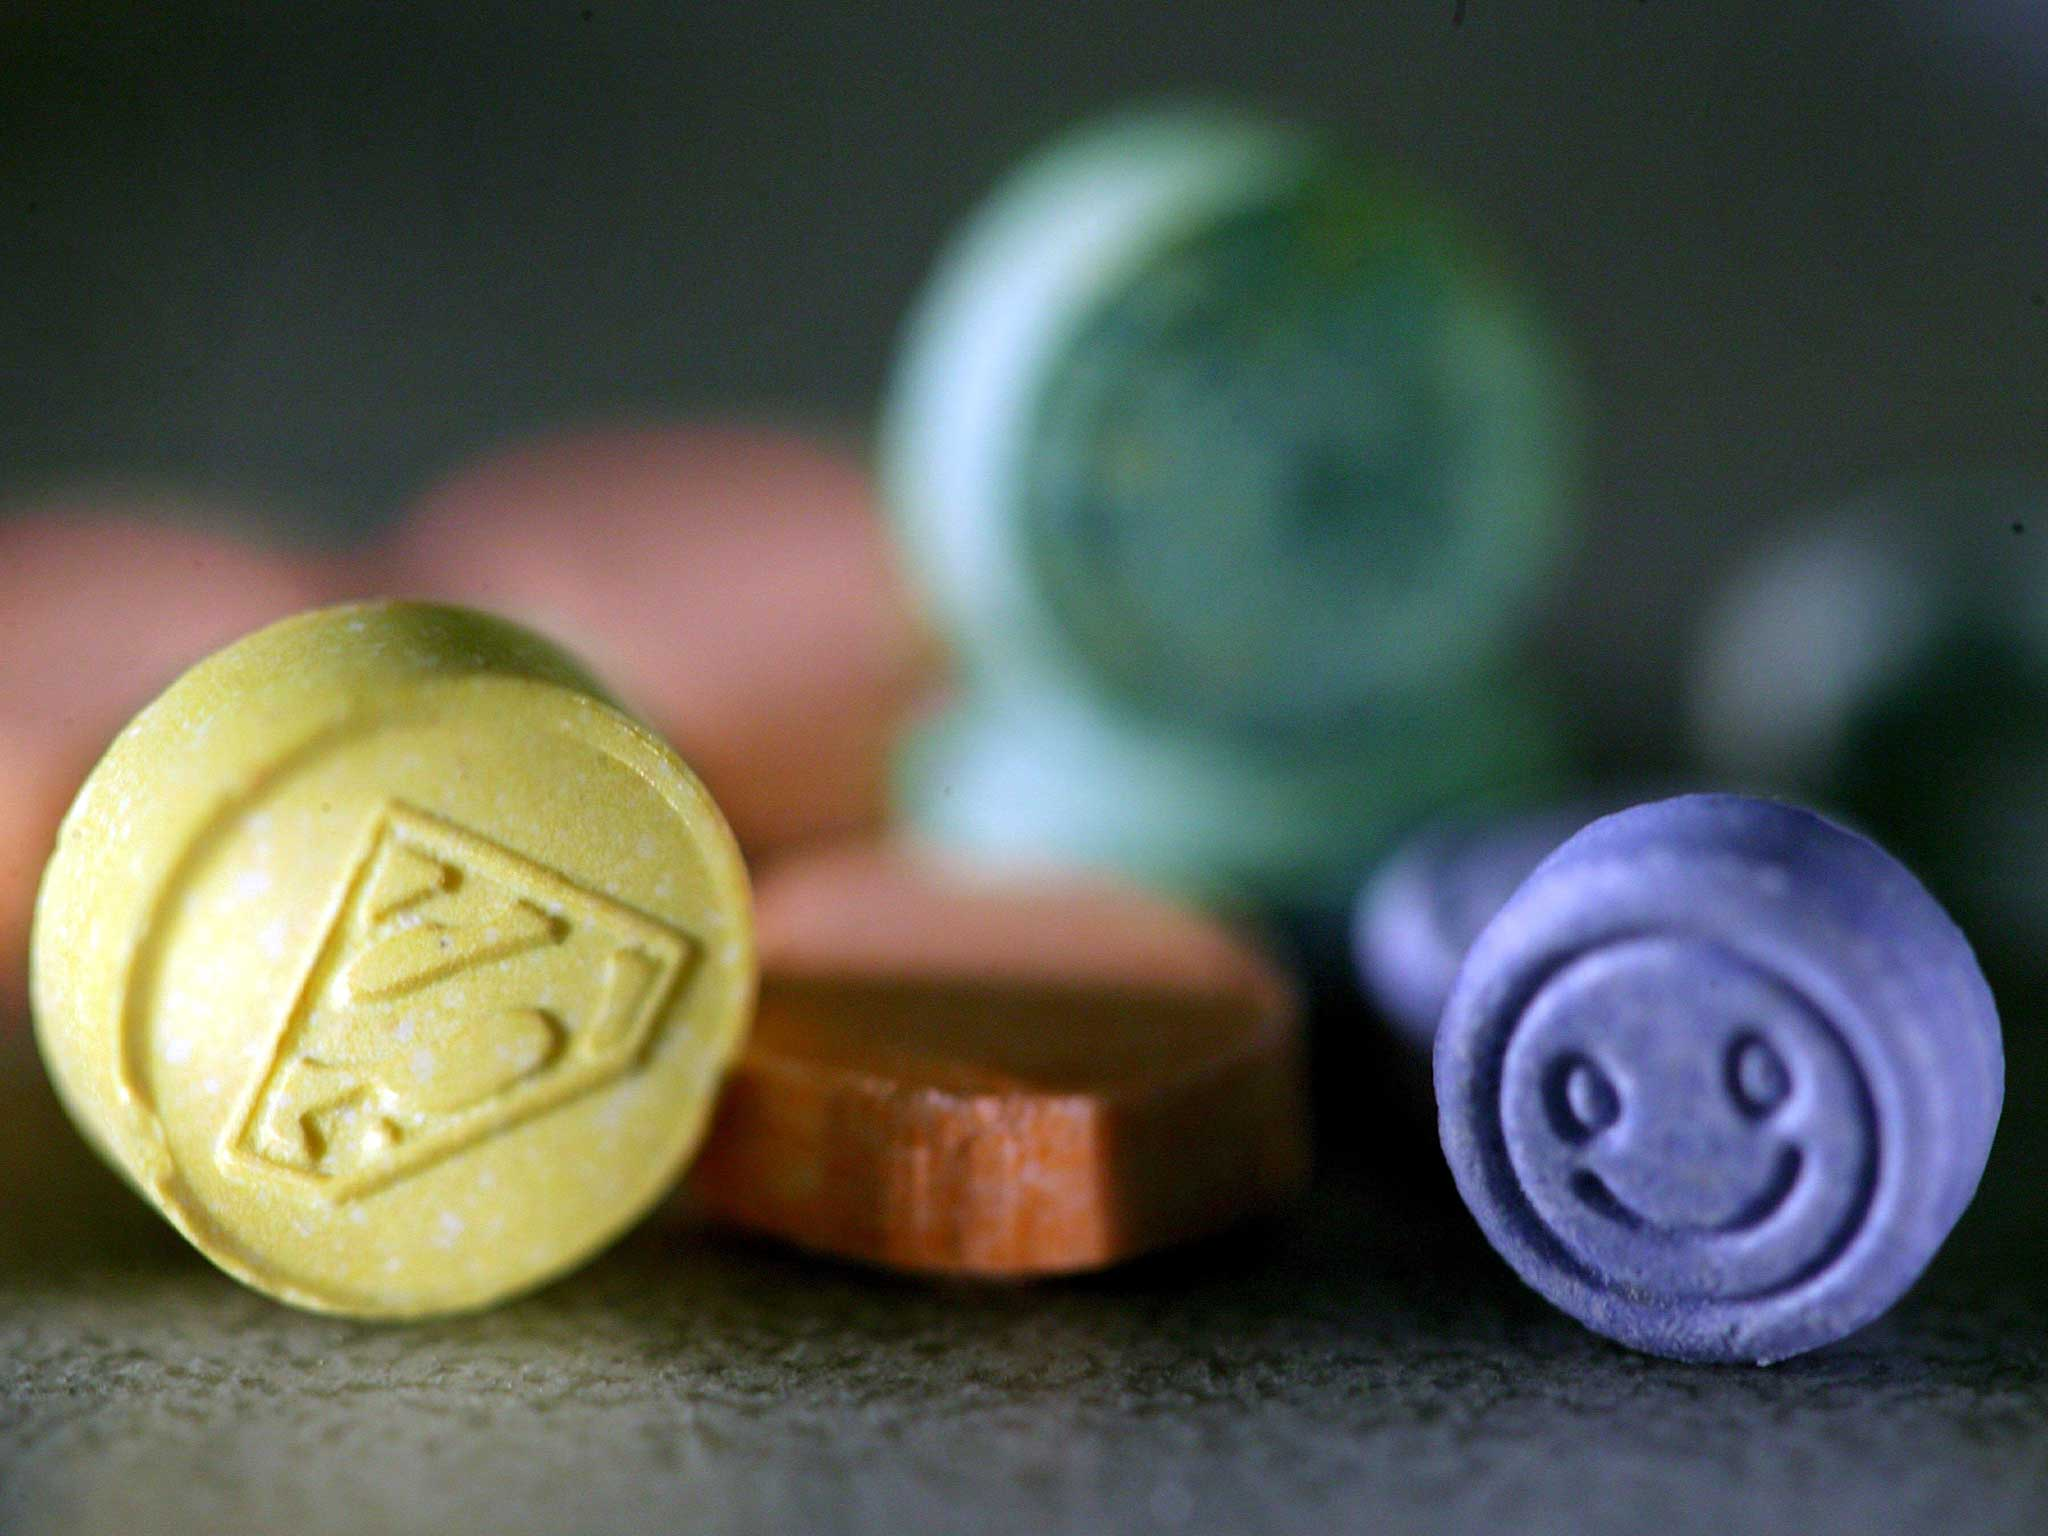 The evolution of ecstasy: From Mandy to Superman, the effects of the drug MDMA